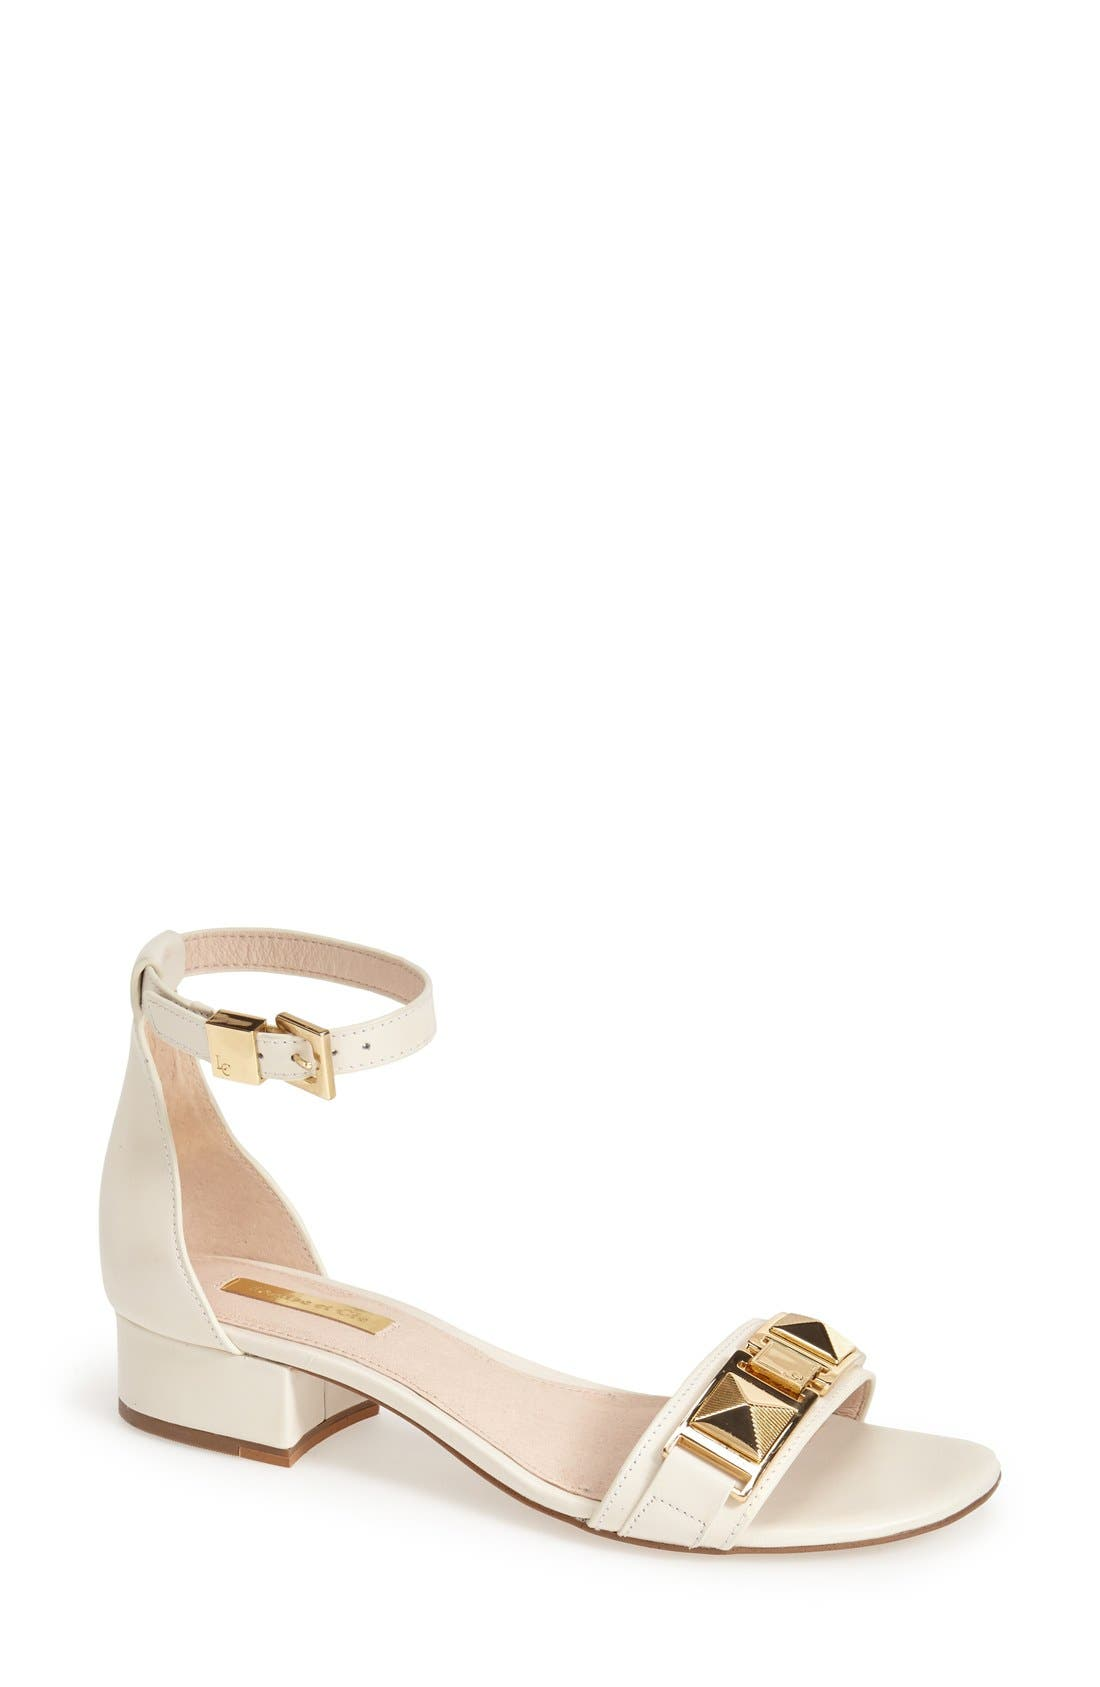 Alternate Image 1 Selected - Louise et Cie 'Isabelle' Ankle Strap Sandal (Women)